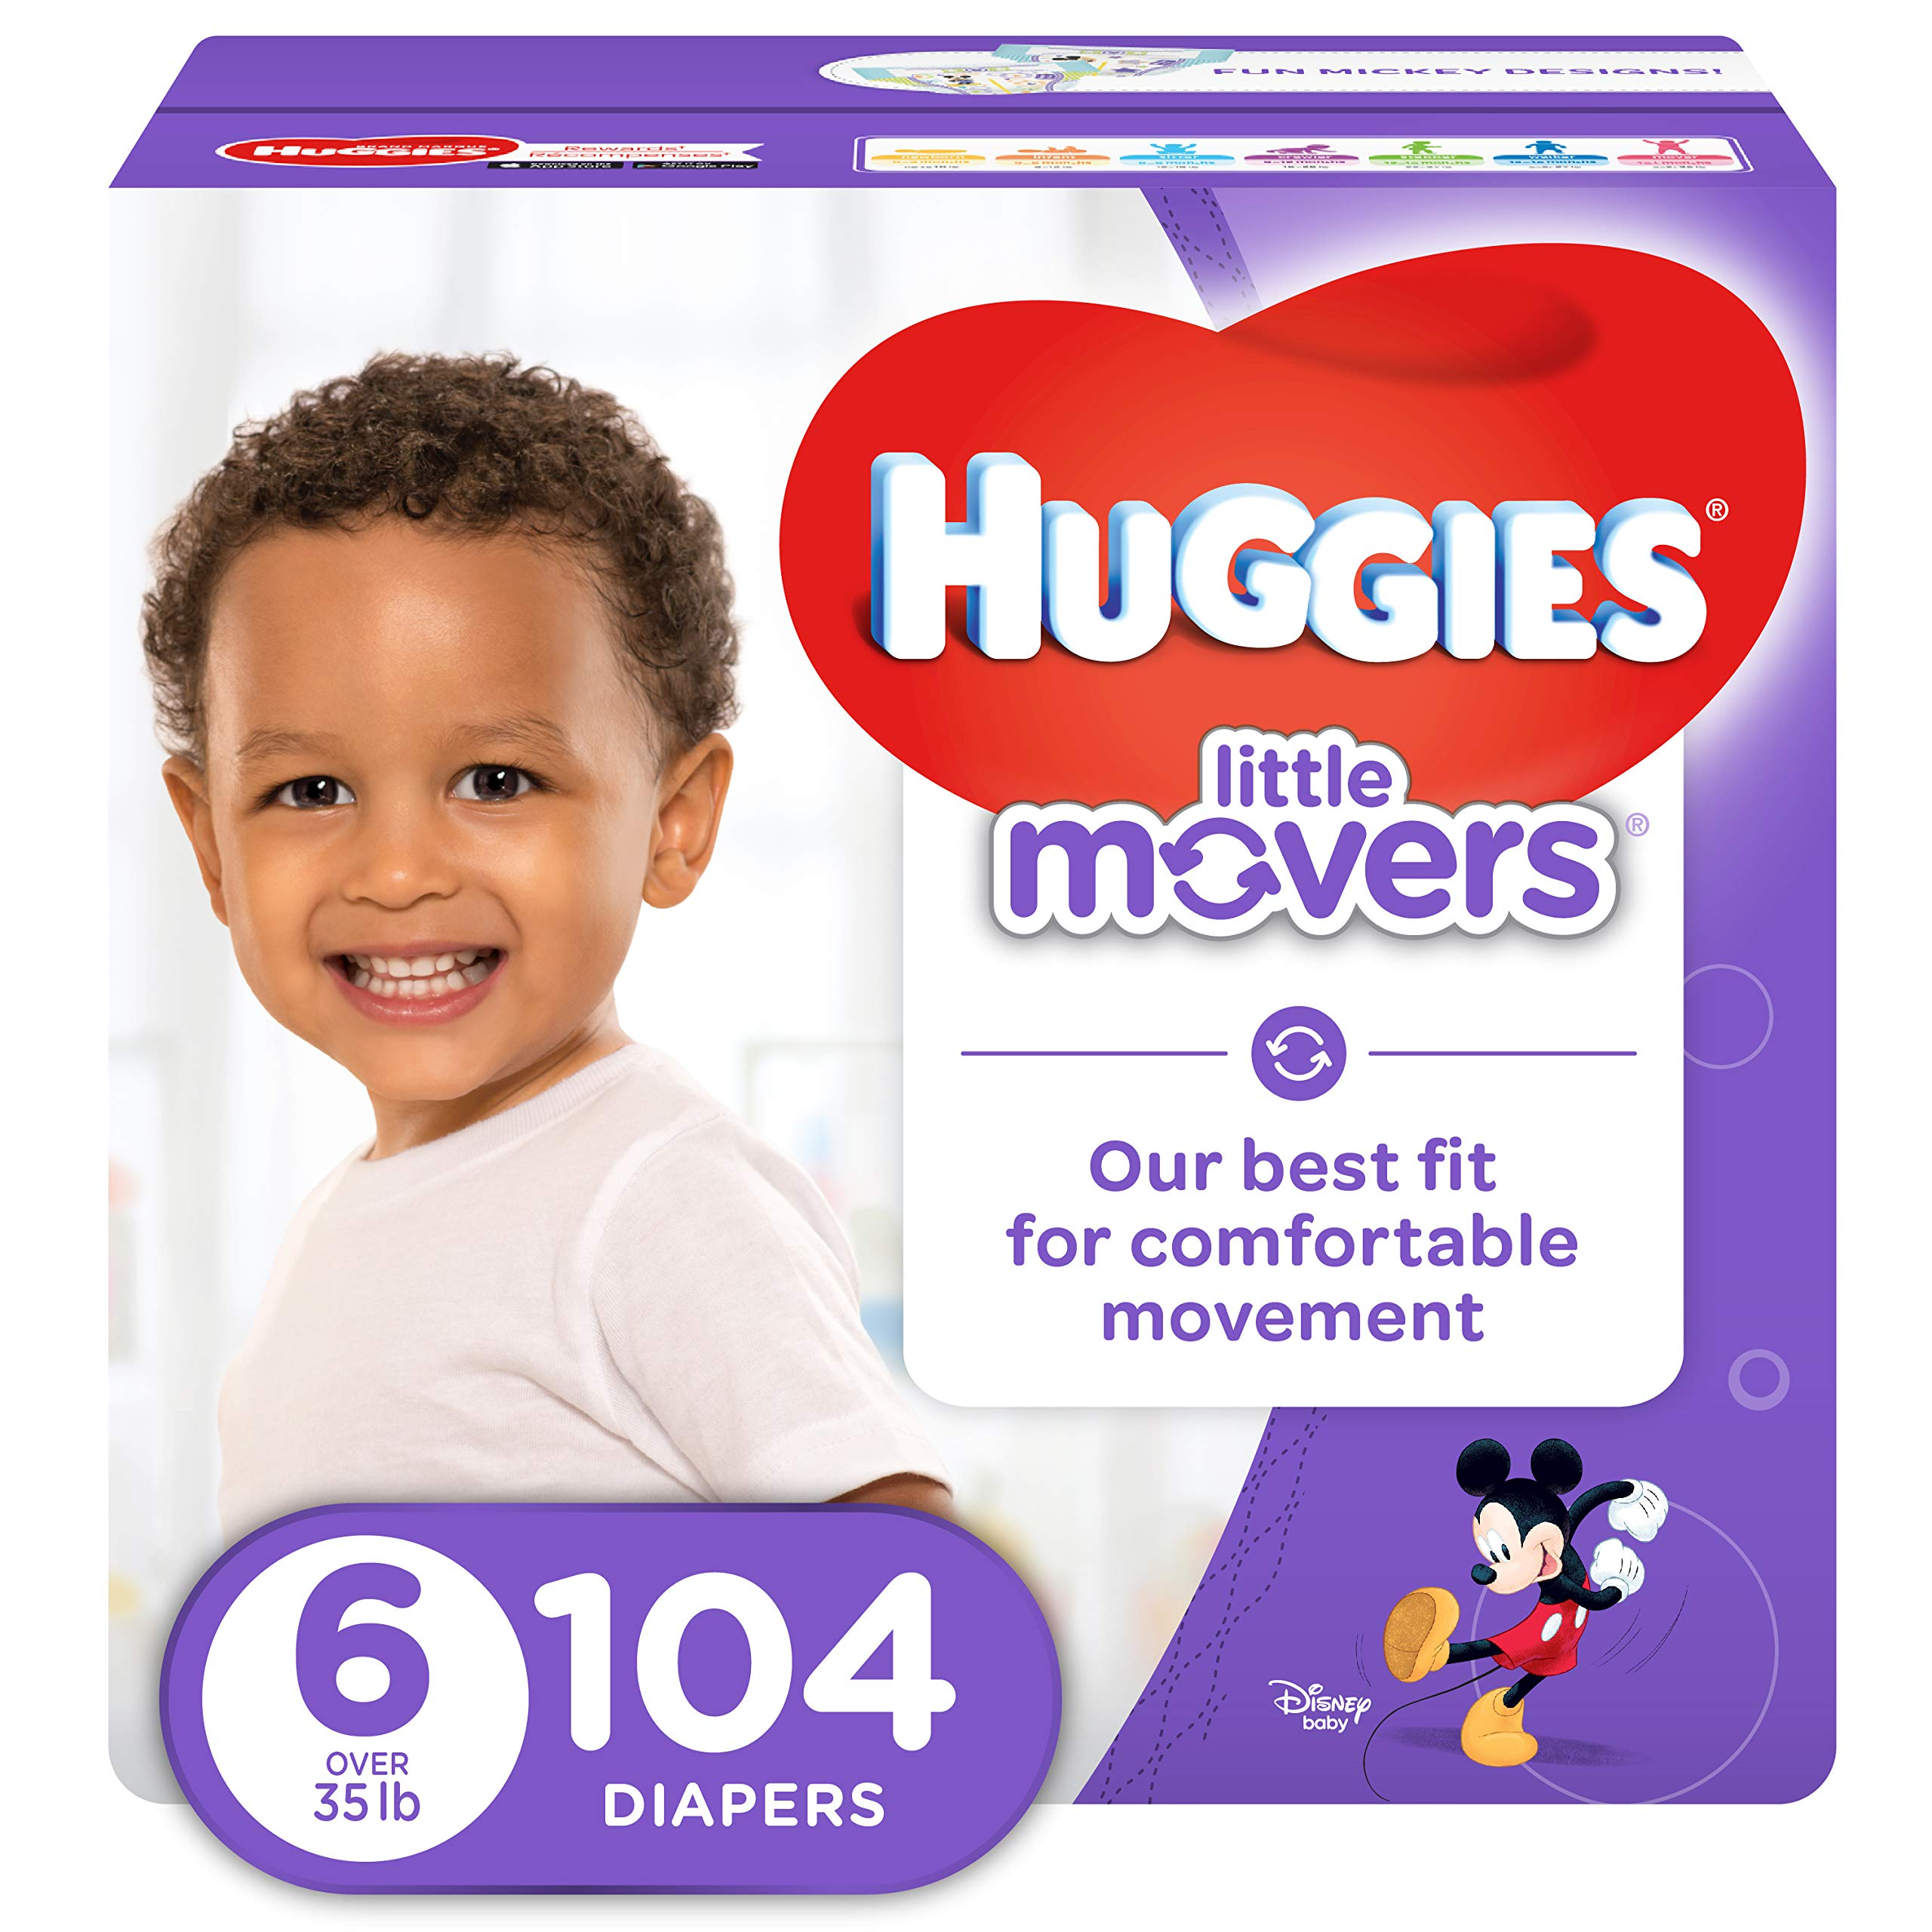 HUGGIES LITTLE MOVERS Active Baby Diapers, Size 6 (fits 35+ lb.), 104 Ct, ECONOMY PLUS (Packaging May Vary) by HUGGIES